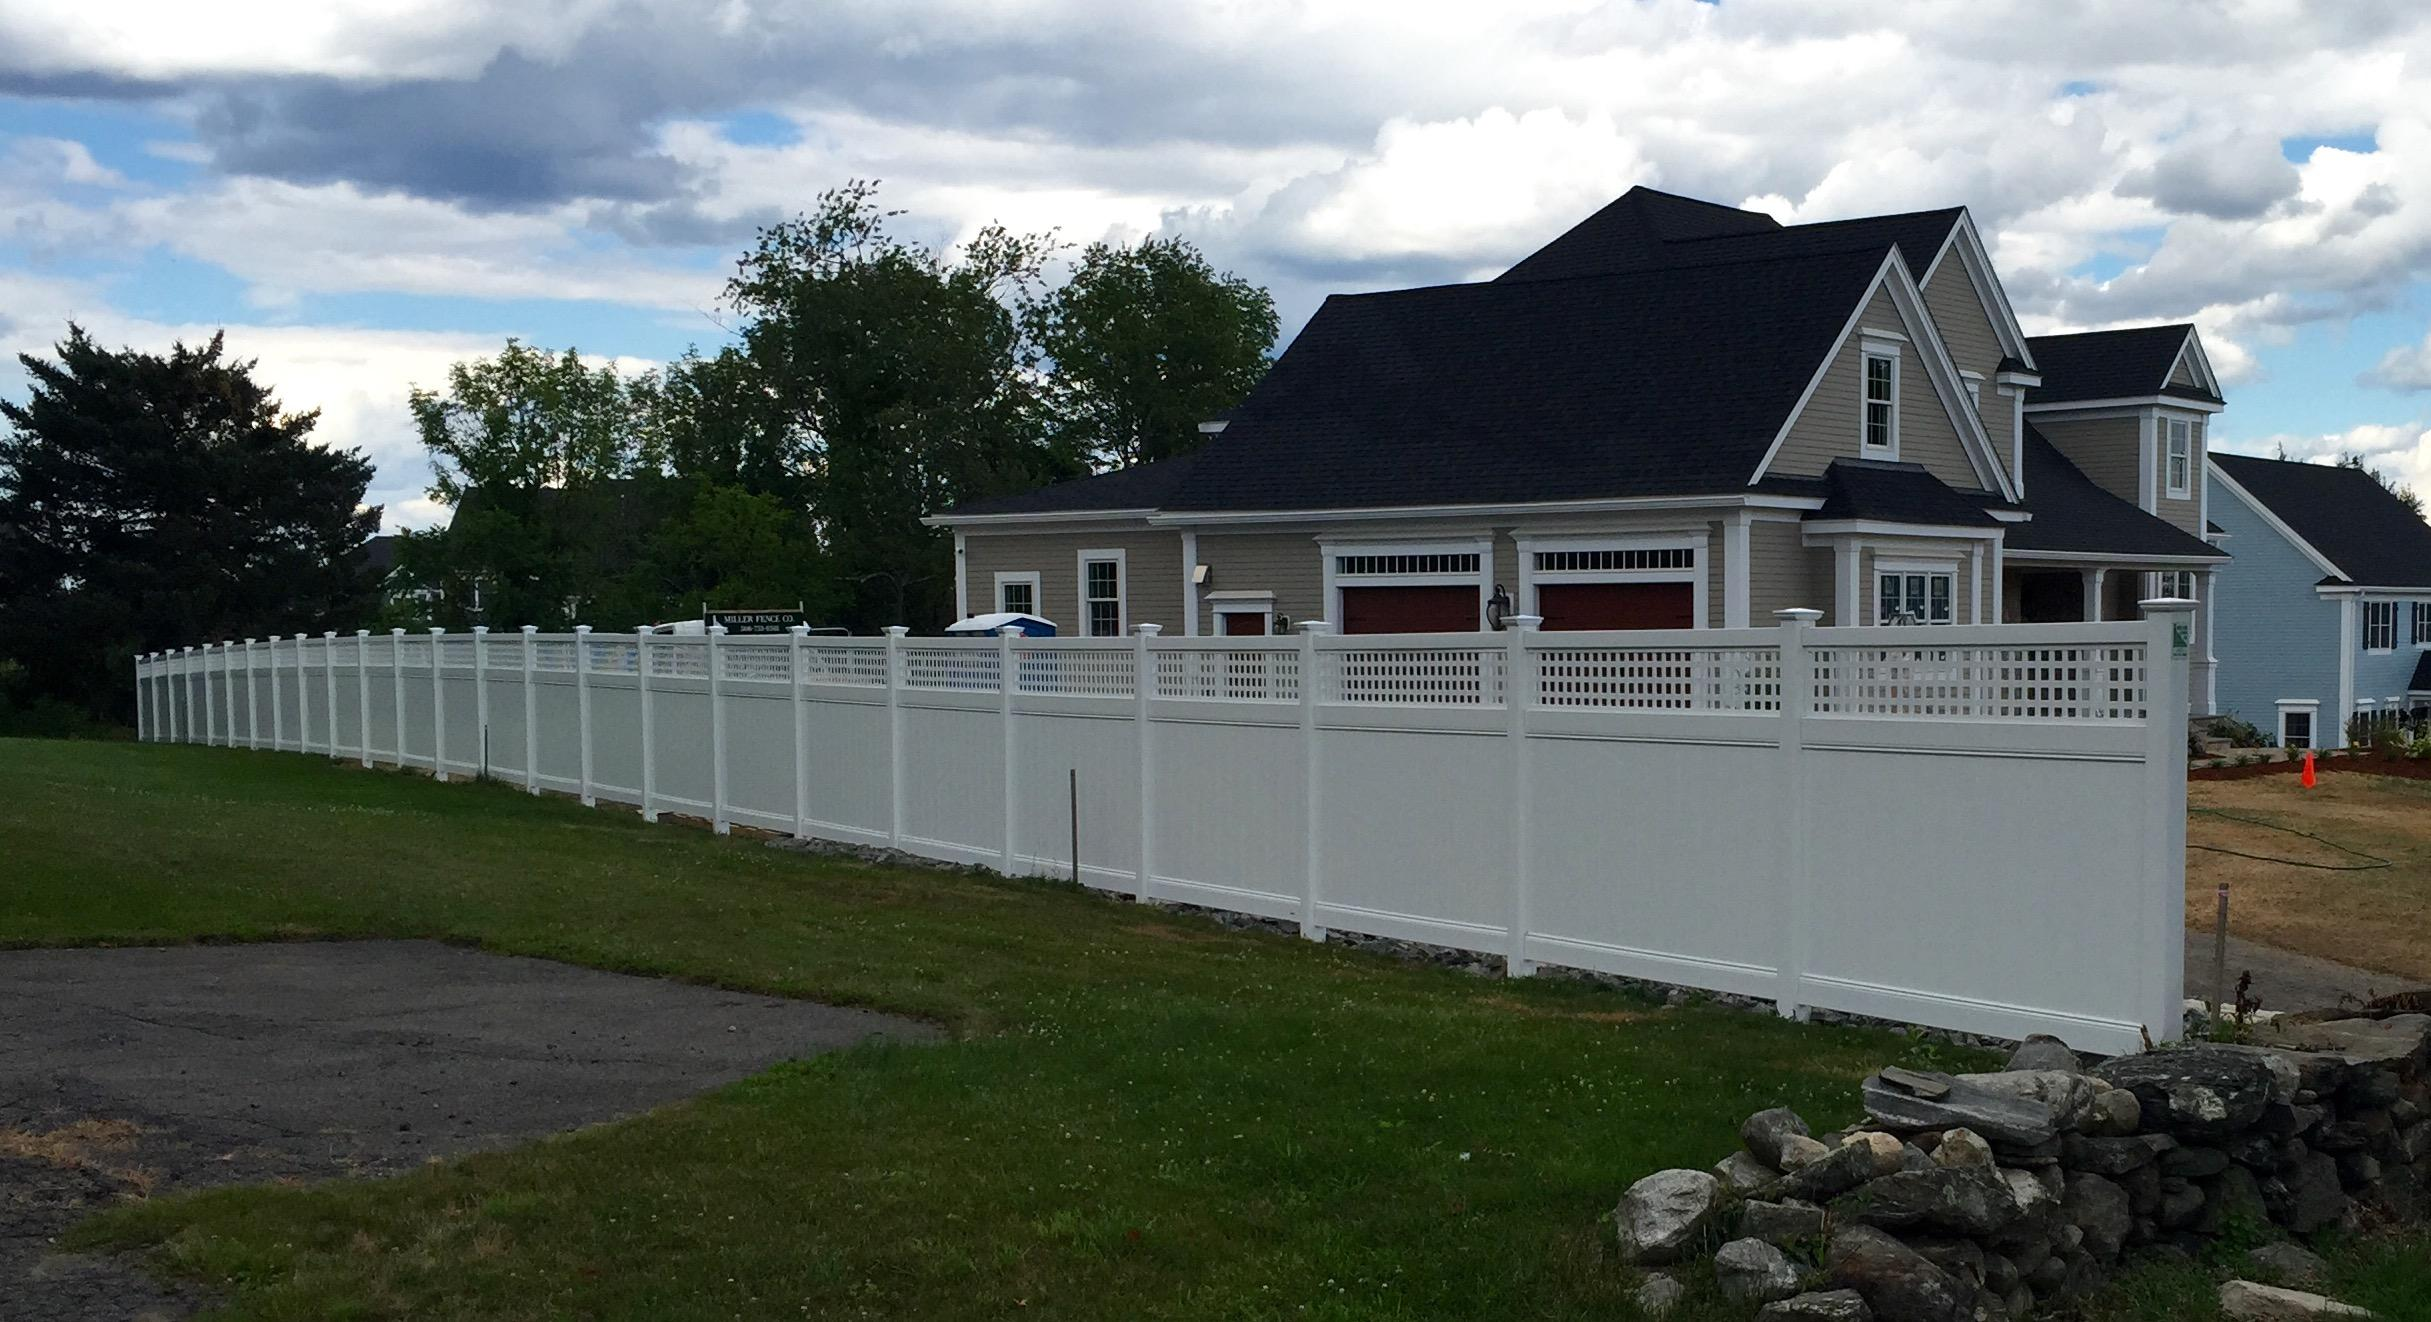 Miller fence projects archives miller fence chesterfield with westminster square lattice accent vinyl privacy fence installation in shrewsbury certainteeds vinyl privacy fence installation is baanklon Image collections